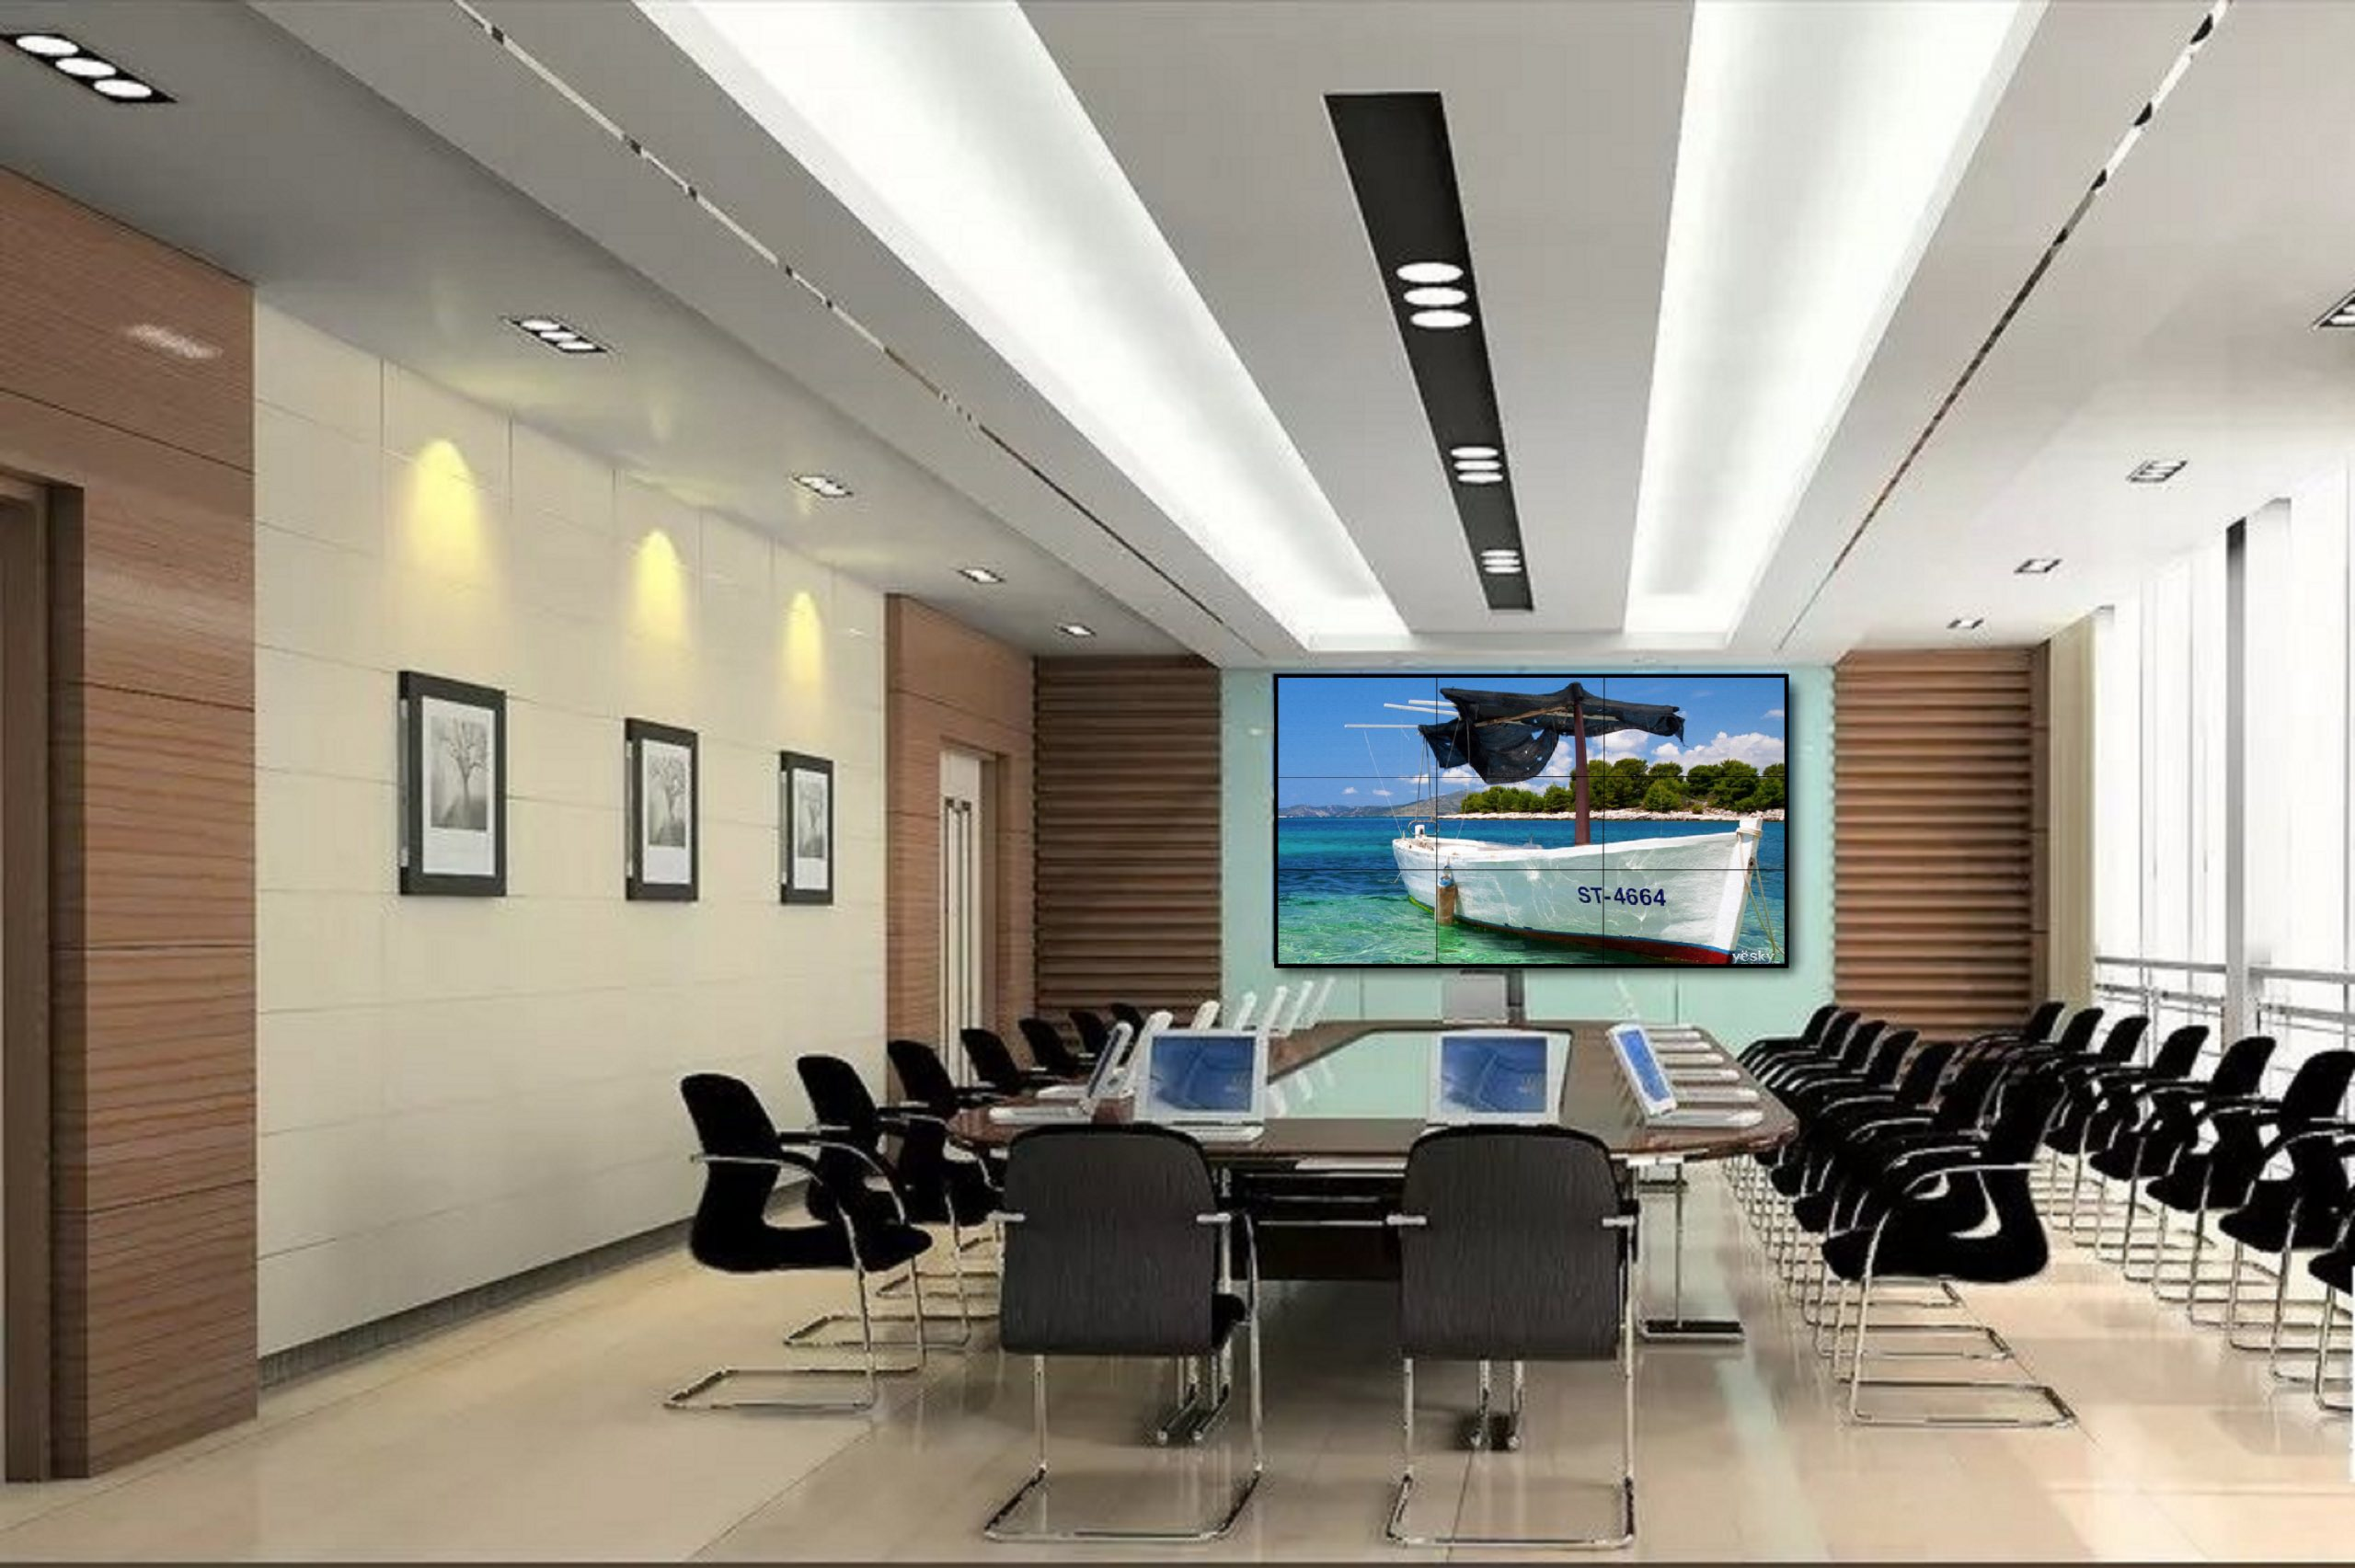 Question:How to choose a full color LED display screen in a large hotel?